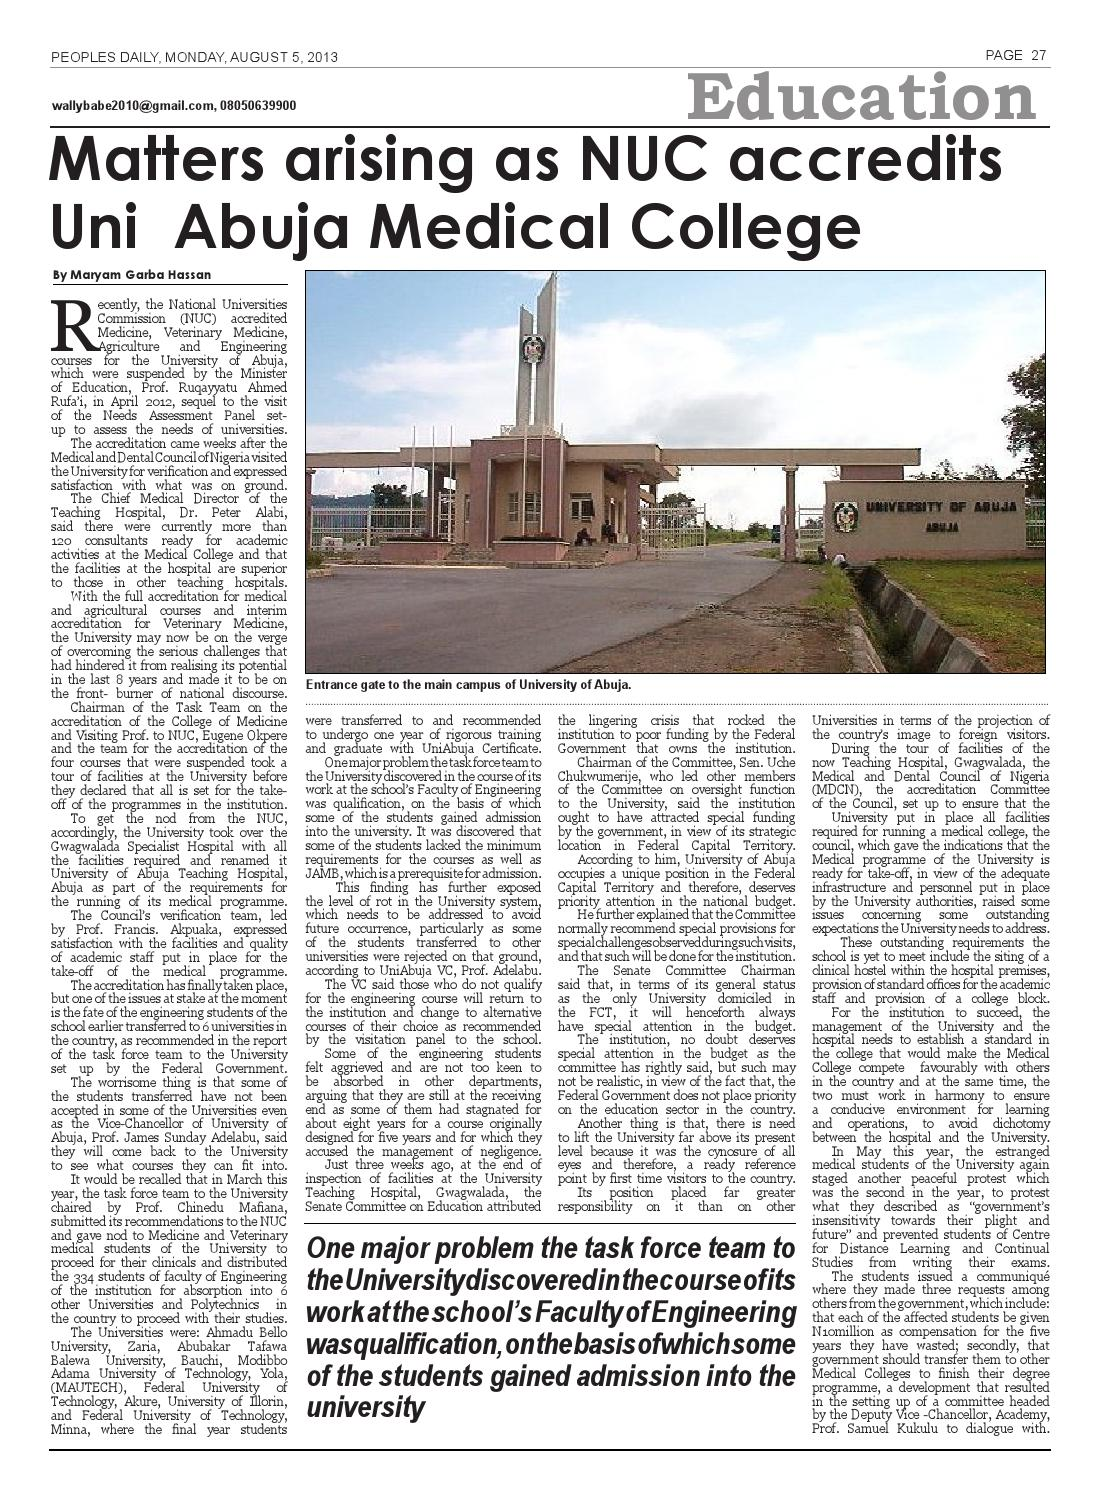 Peoples Daily Newspaper, Monday 05, August, 2013 by Peoples